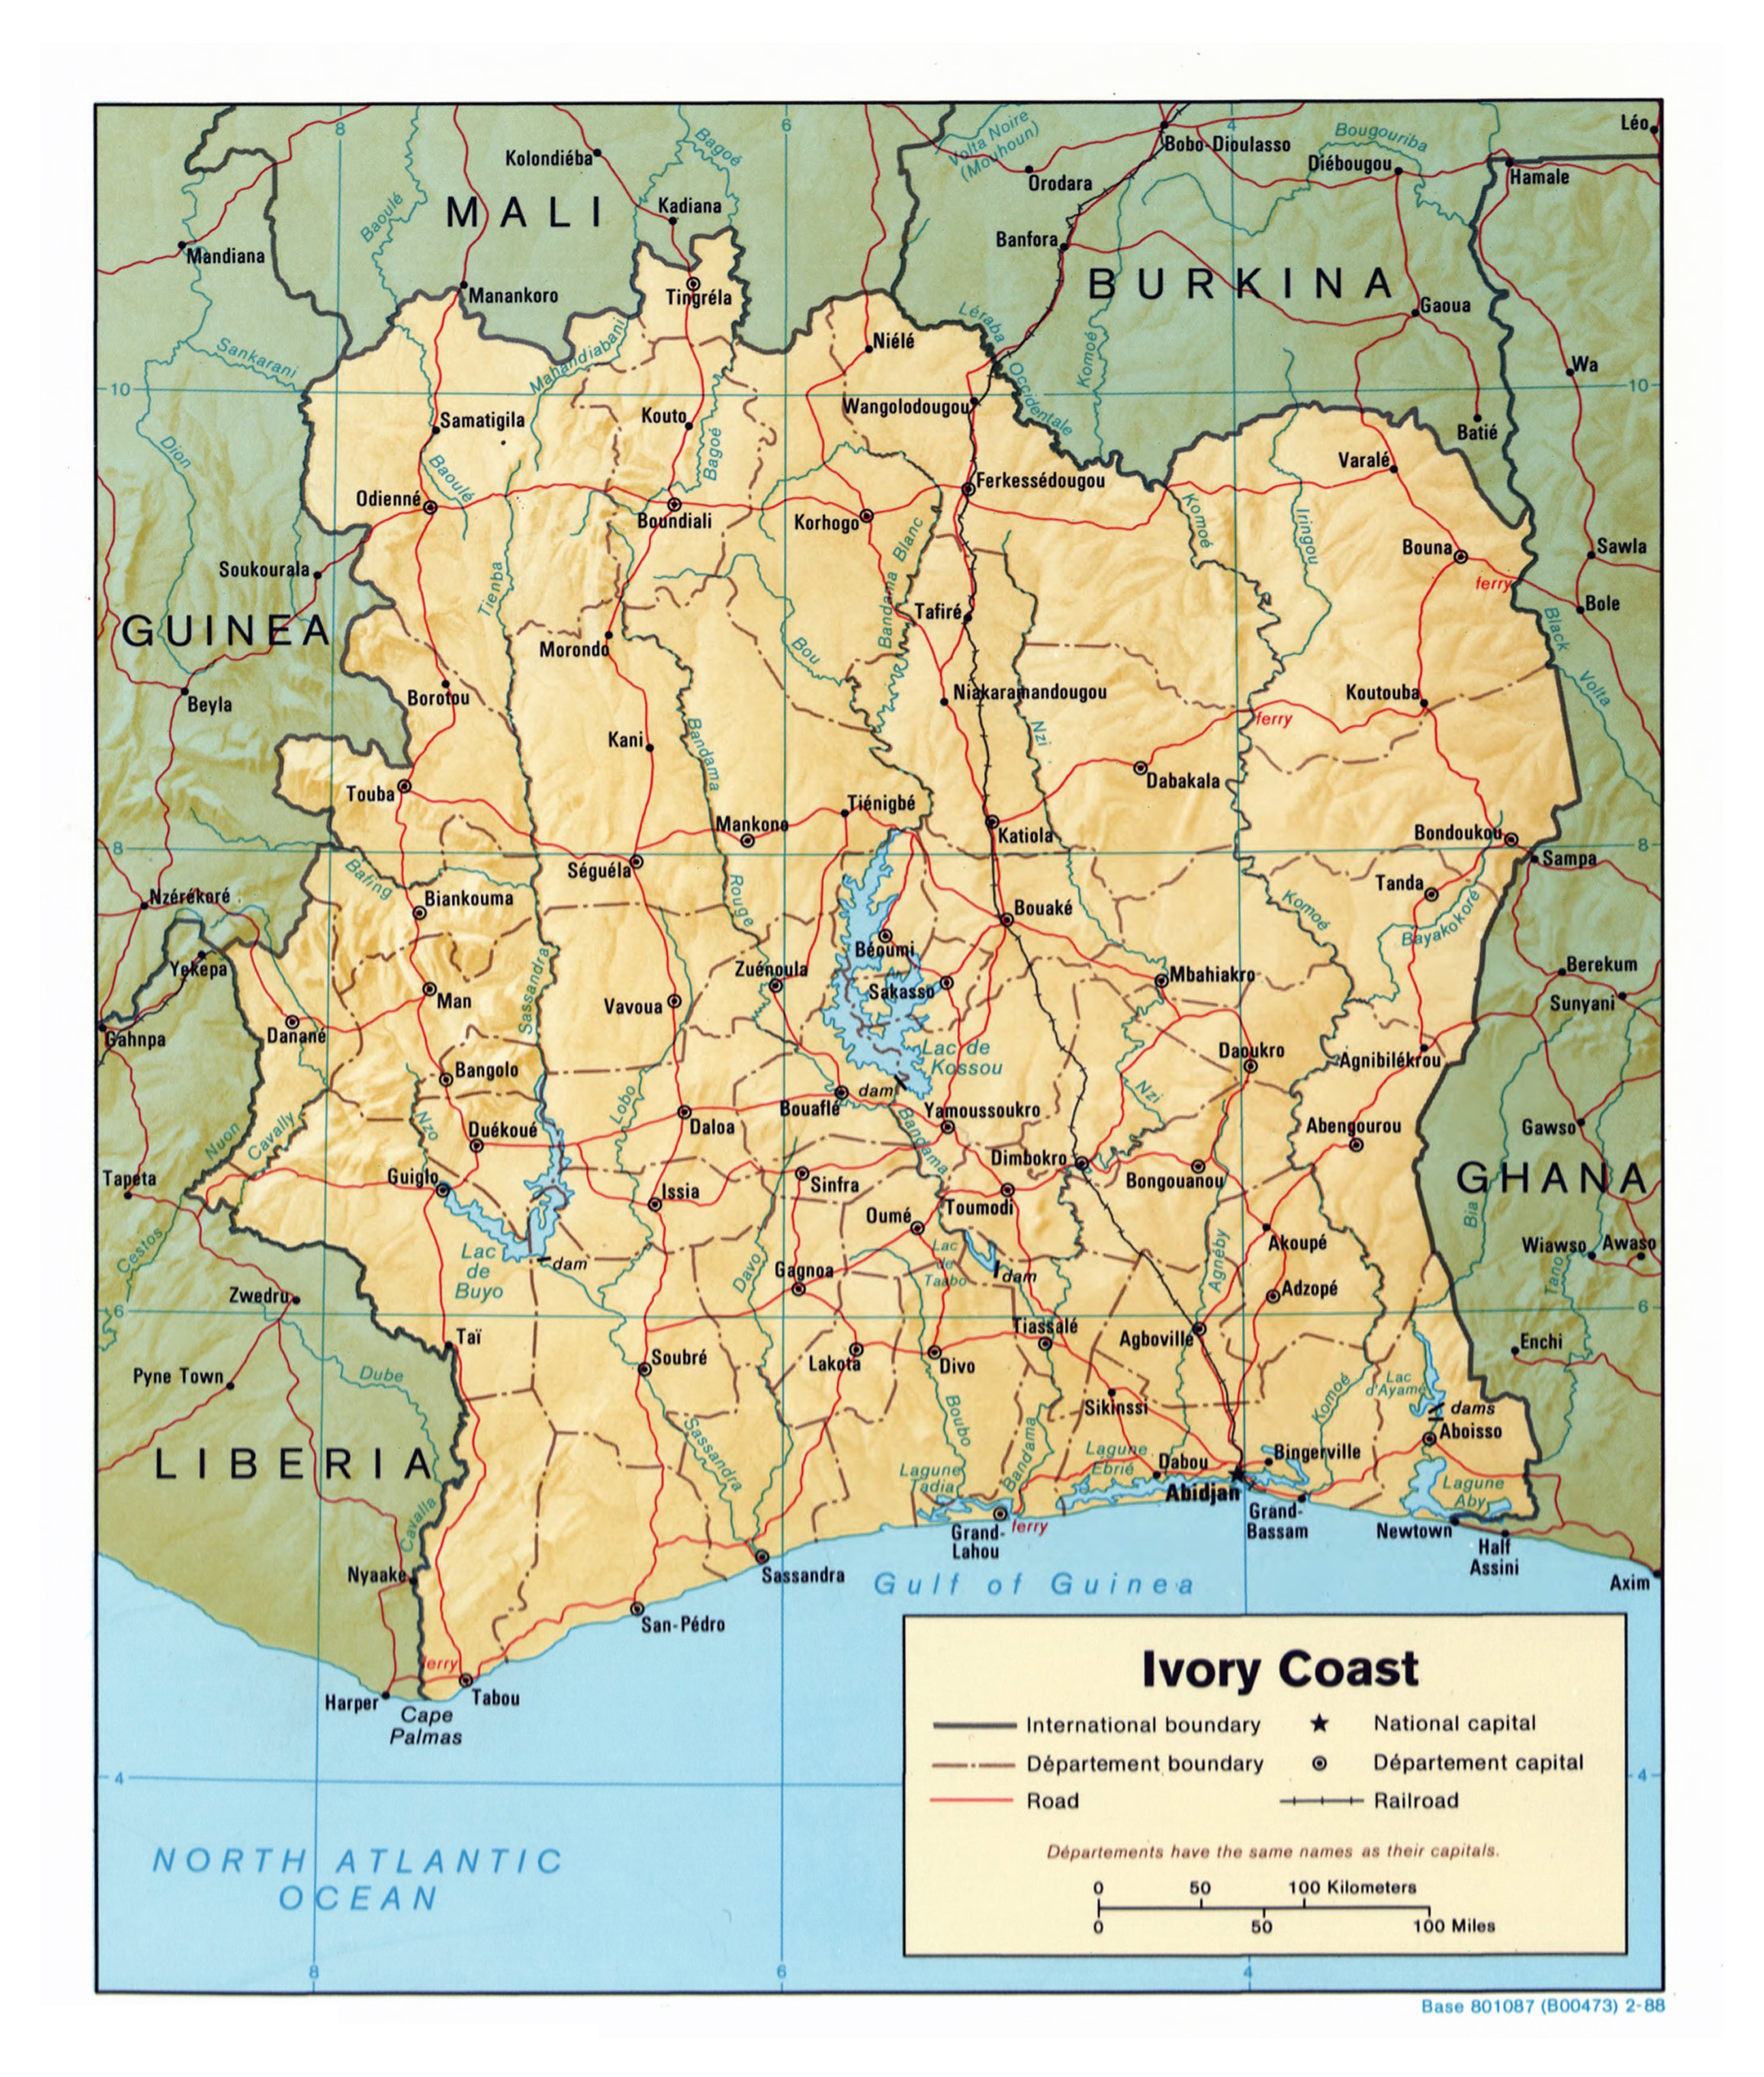 Large scale political and administrative map of Cote dIvoire with